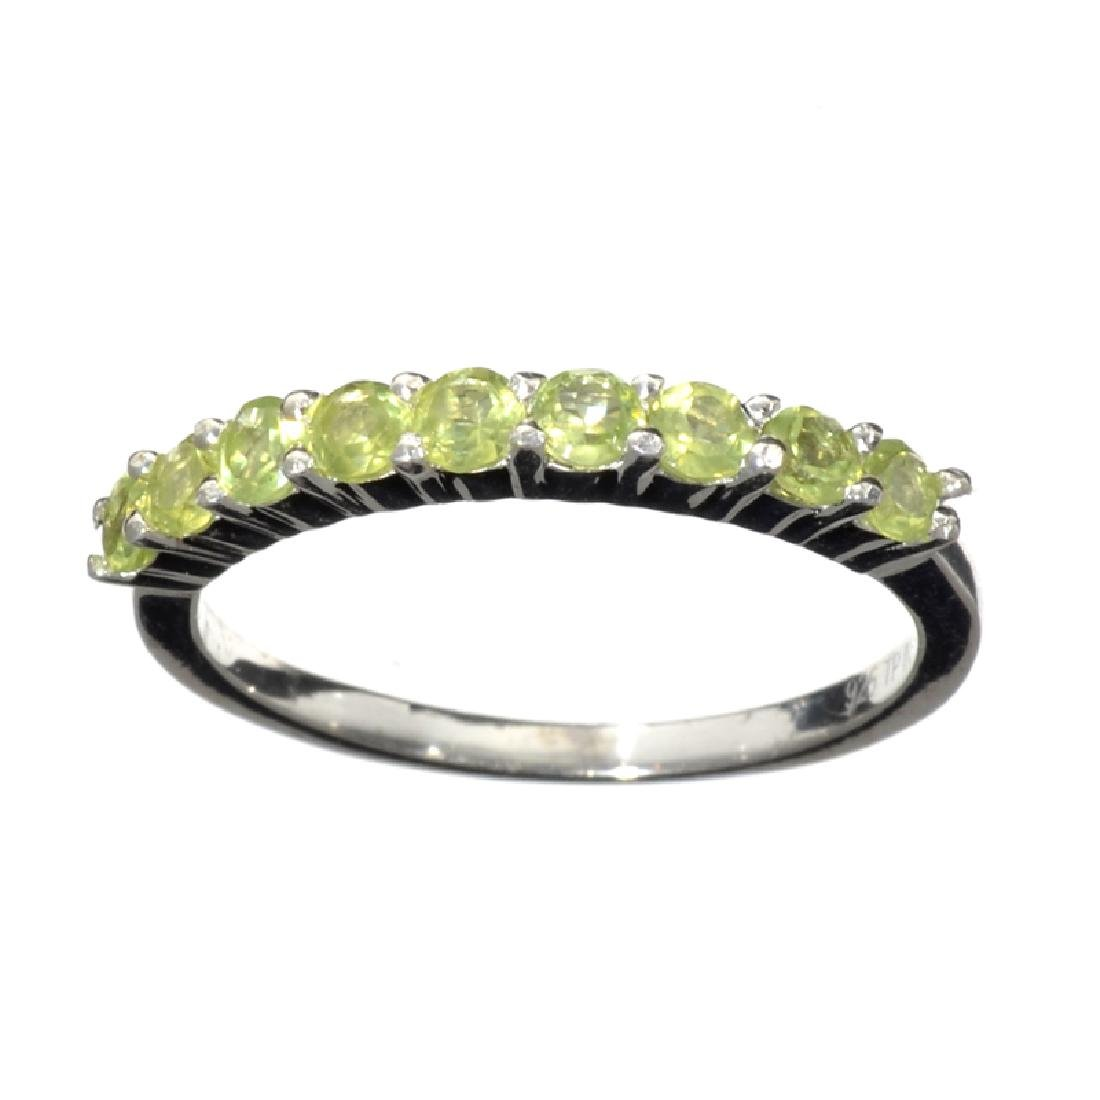 APP: 0.7k Fine Jewelry 0.85CT Round Cut Green Peridot